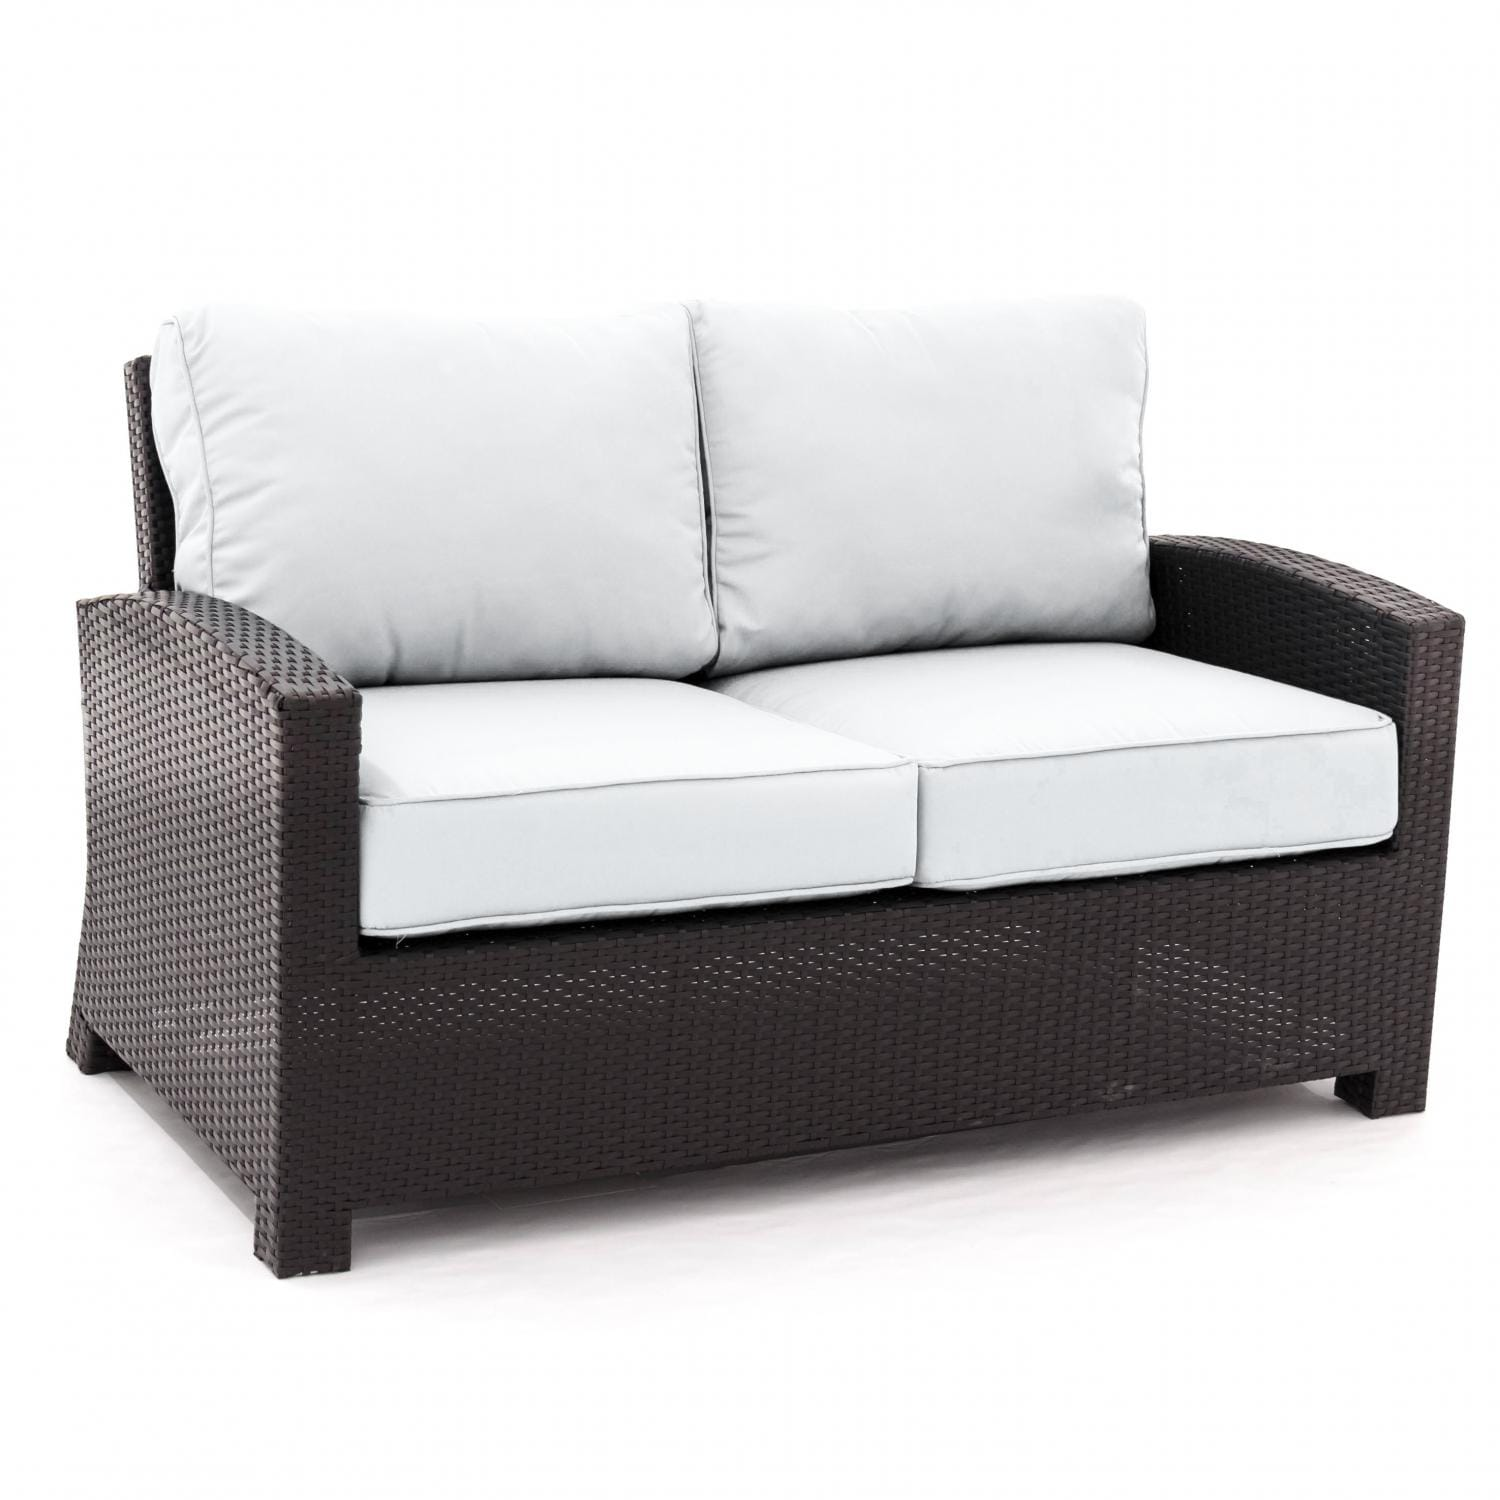 Eden Isle Resin Wicker Patio Loveseat By Lakeview Outdoor Designs Canvas Natural Ultimate Patio